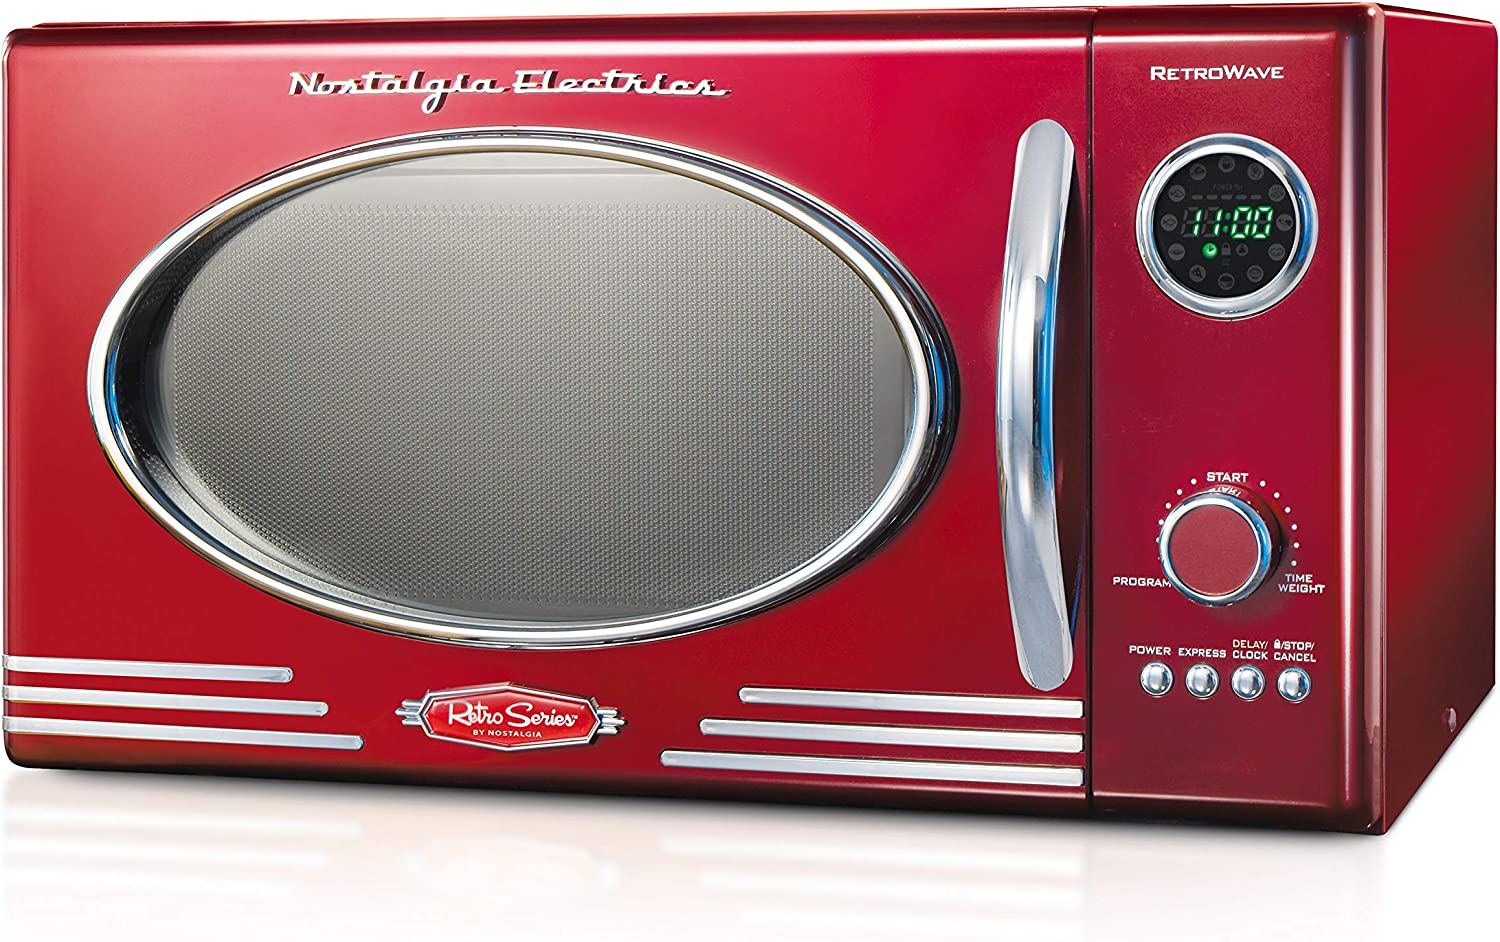 Nostalgia RMO4RR Retro Large 0.9 cu ft, 800-Watt Countertop Microwave Oven, 12 Pre-Programmed Cooking Settings, Digital Clock, Easy Clean Interior, ...